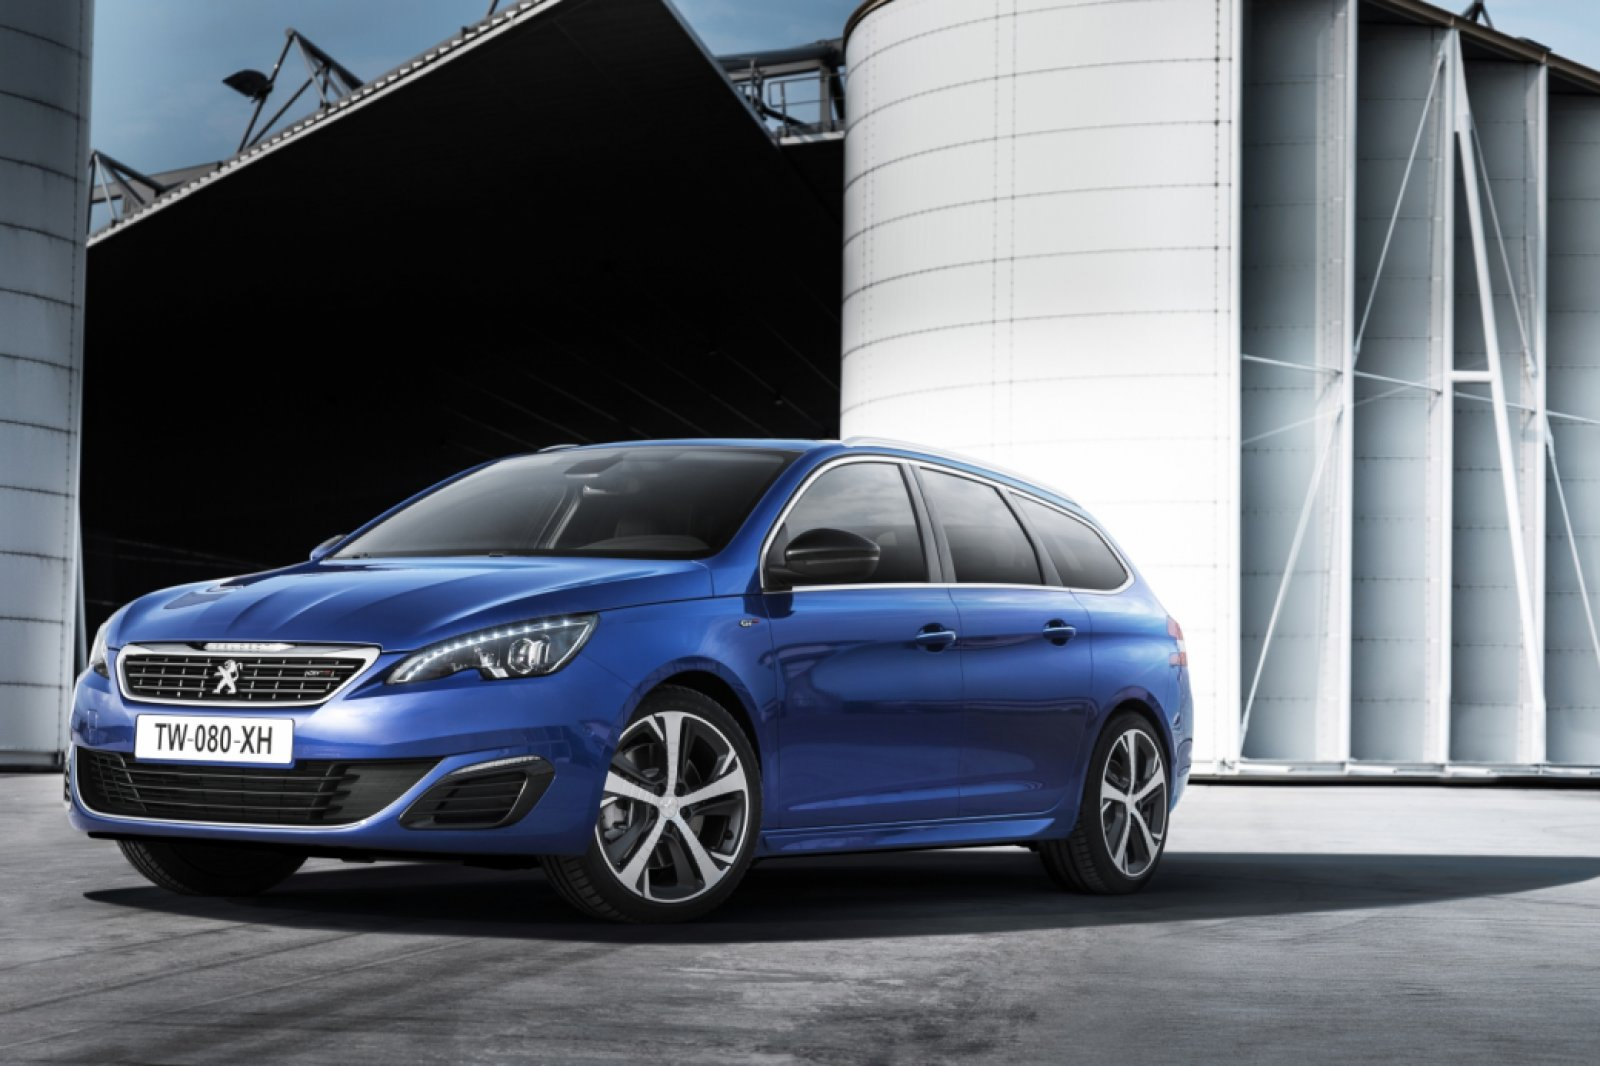 peugeot 308 gt leverbaar als benzine of diesel drivessential. Black Bedroom Furniture Sets. Home Design Ideas